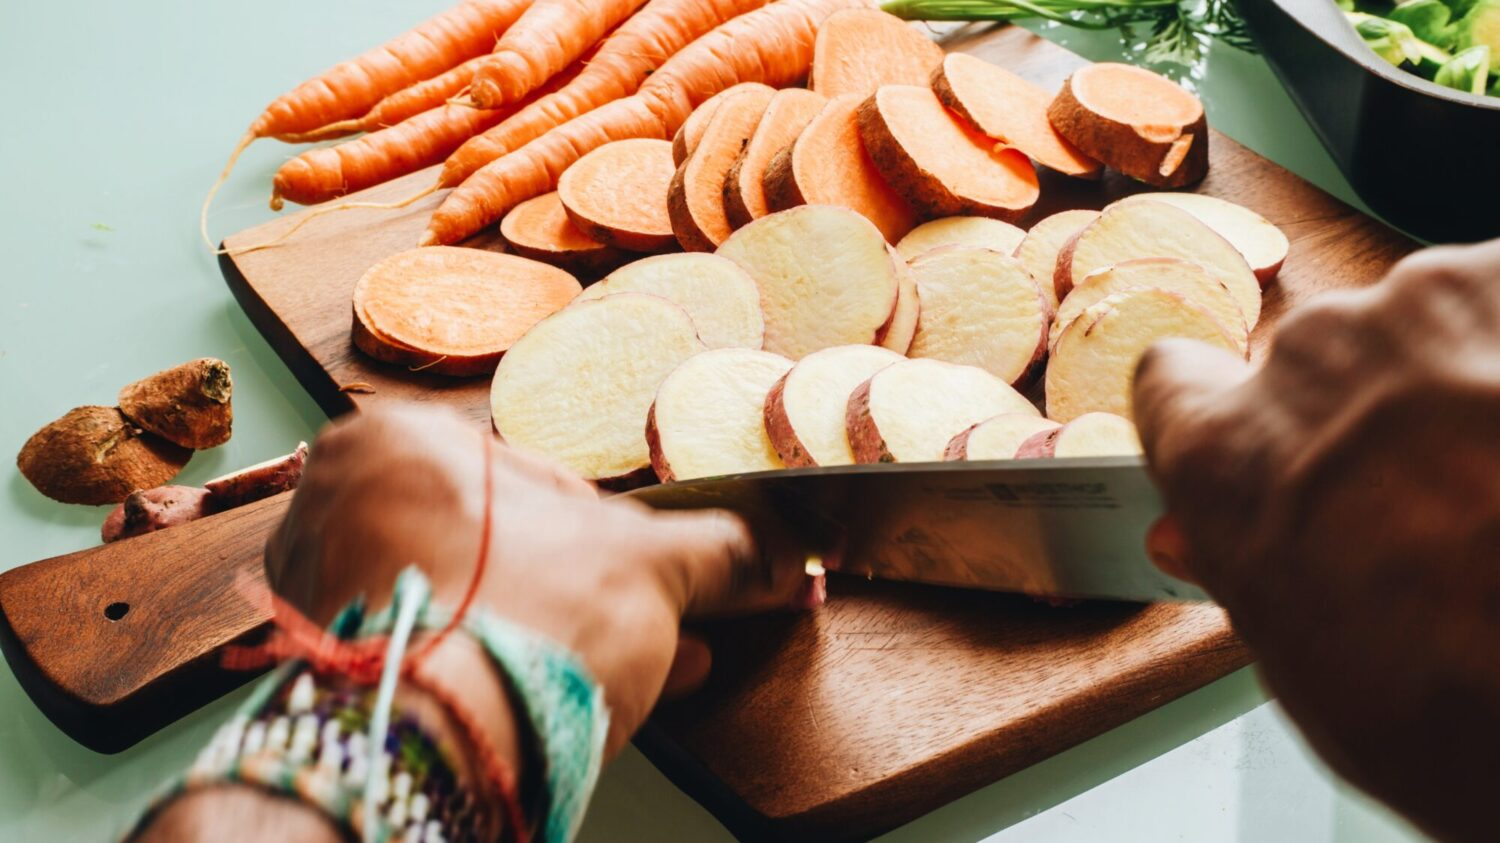 Gut Health on a Vegan Diet: It's About More Than Just Gas